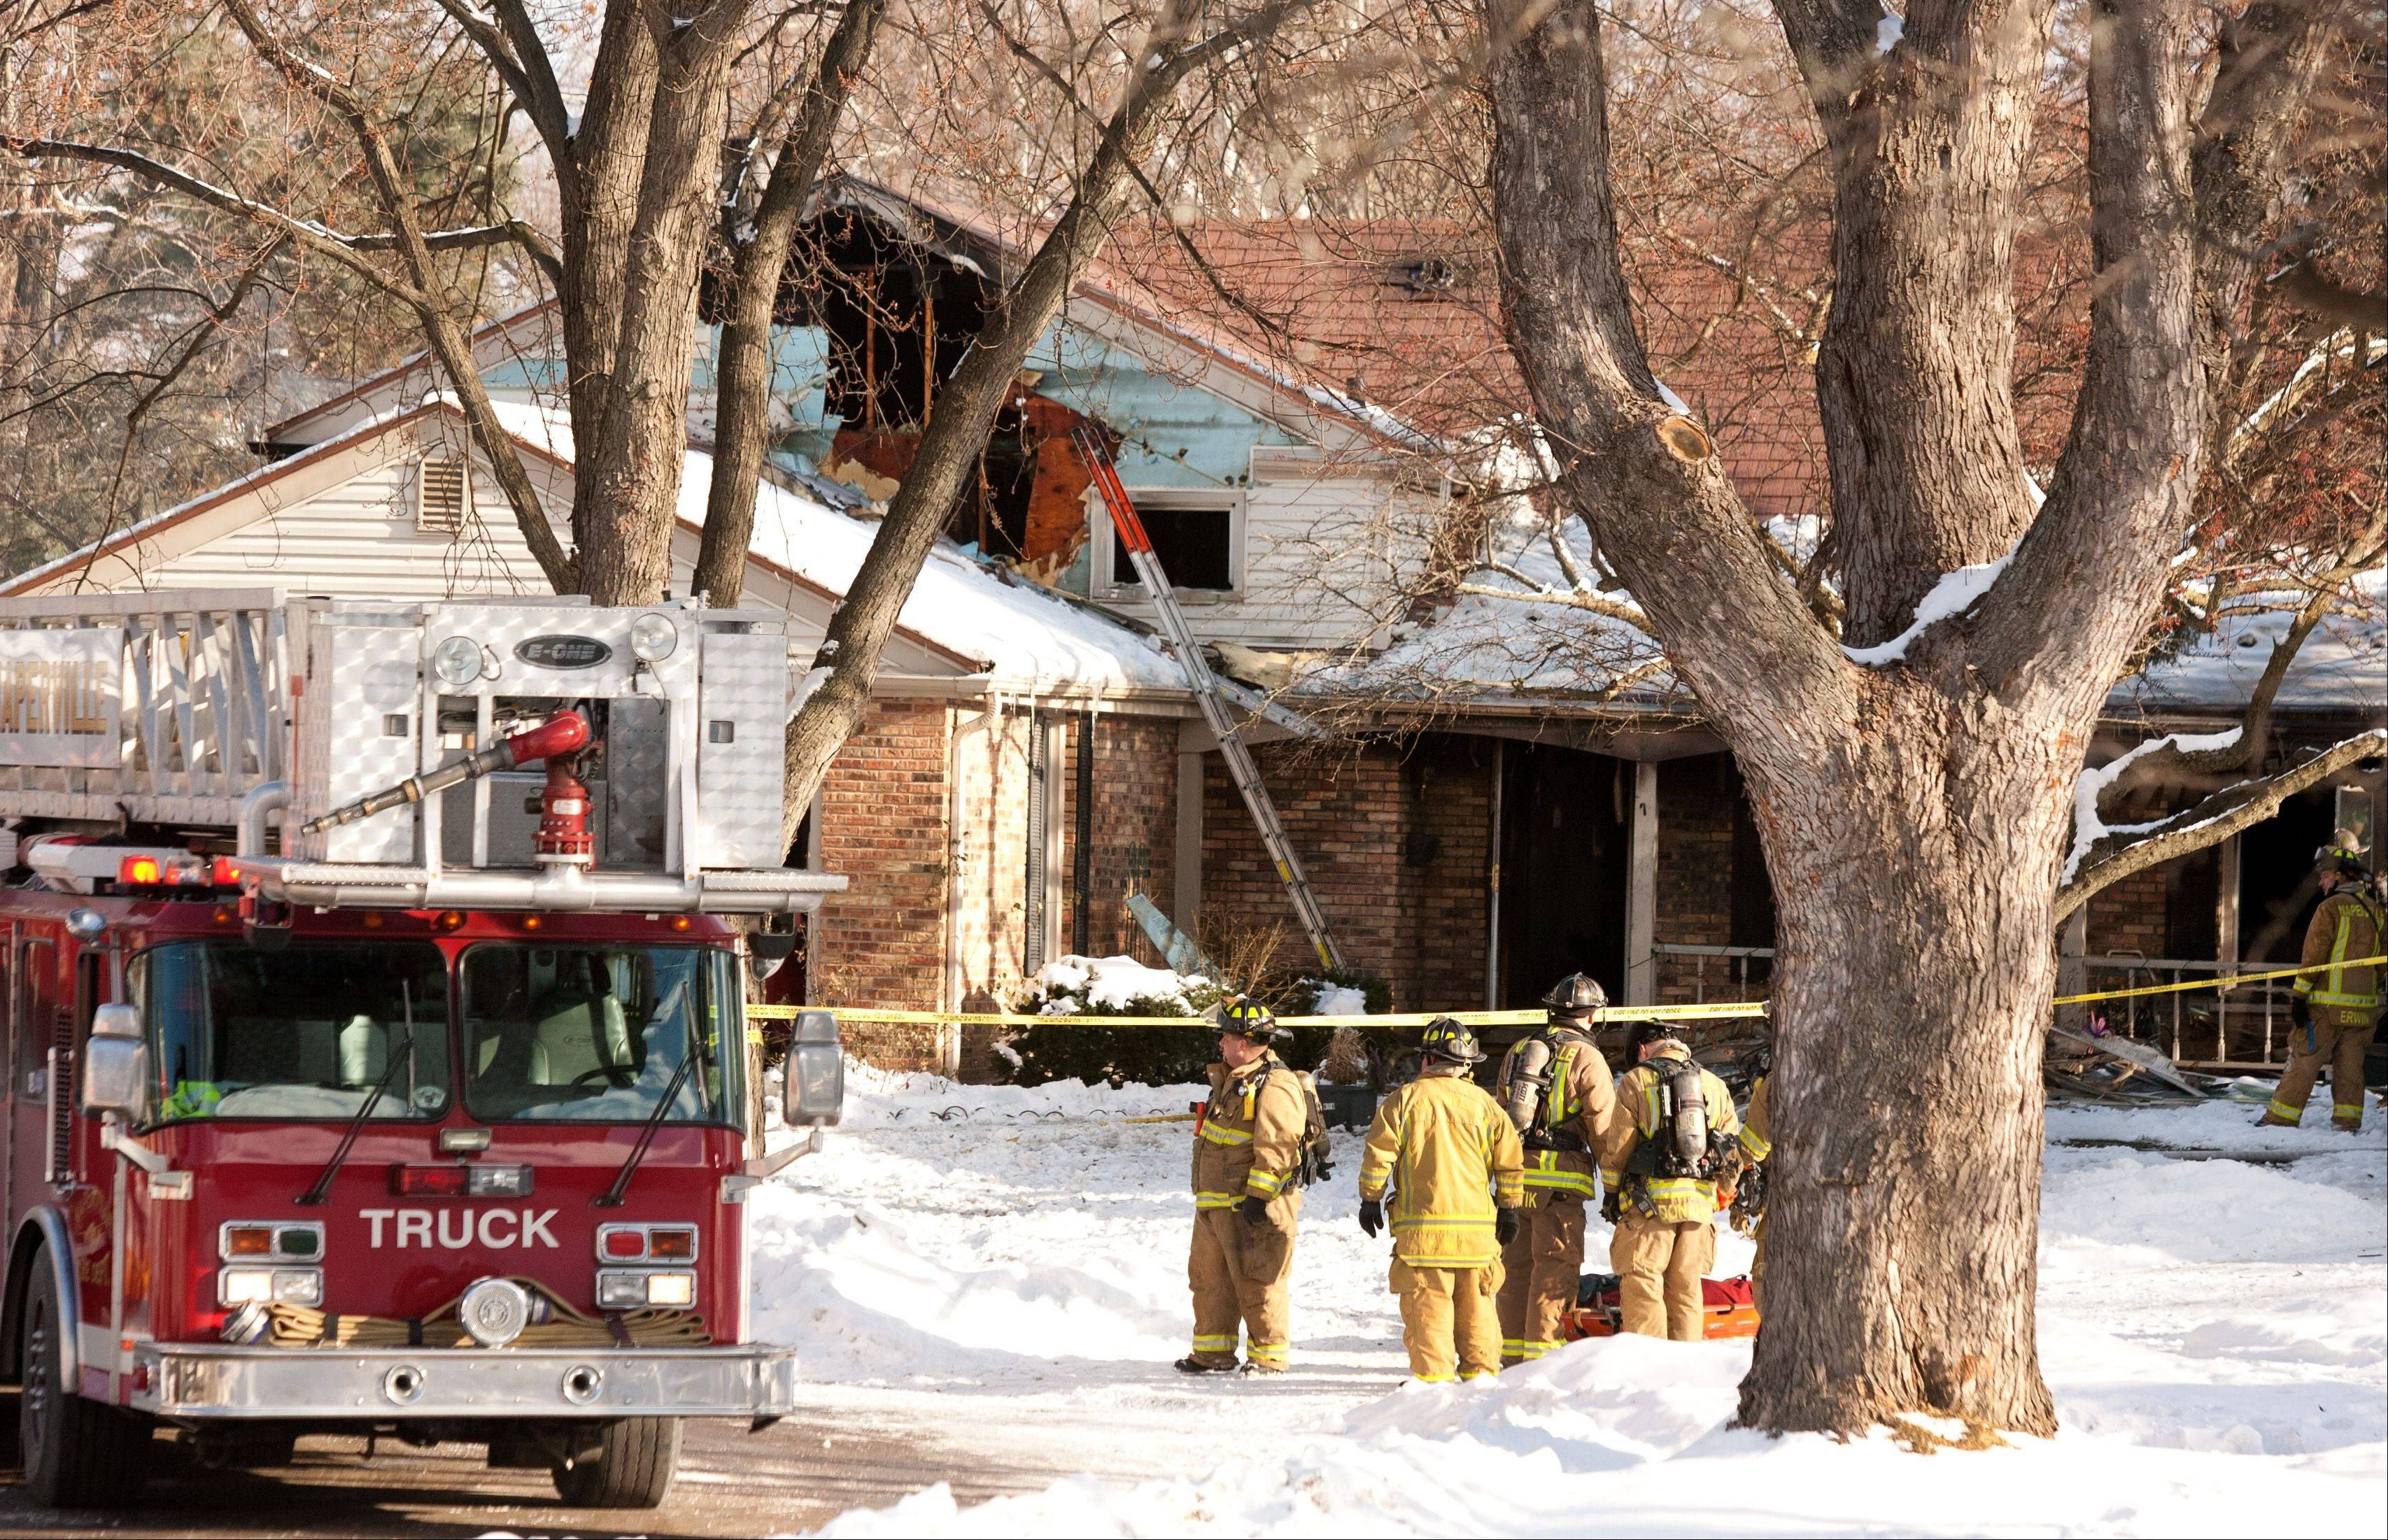 Naperville firefighters respond to a midmorning house fire on Field Court in Naperville.